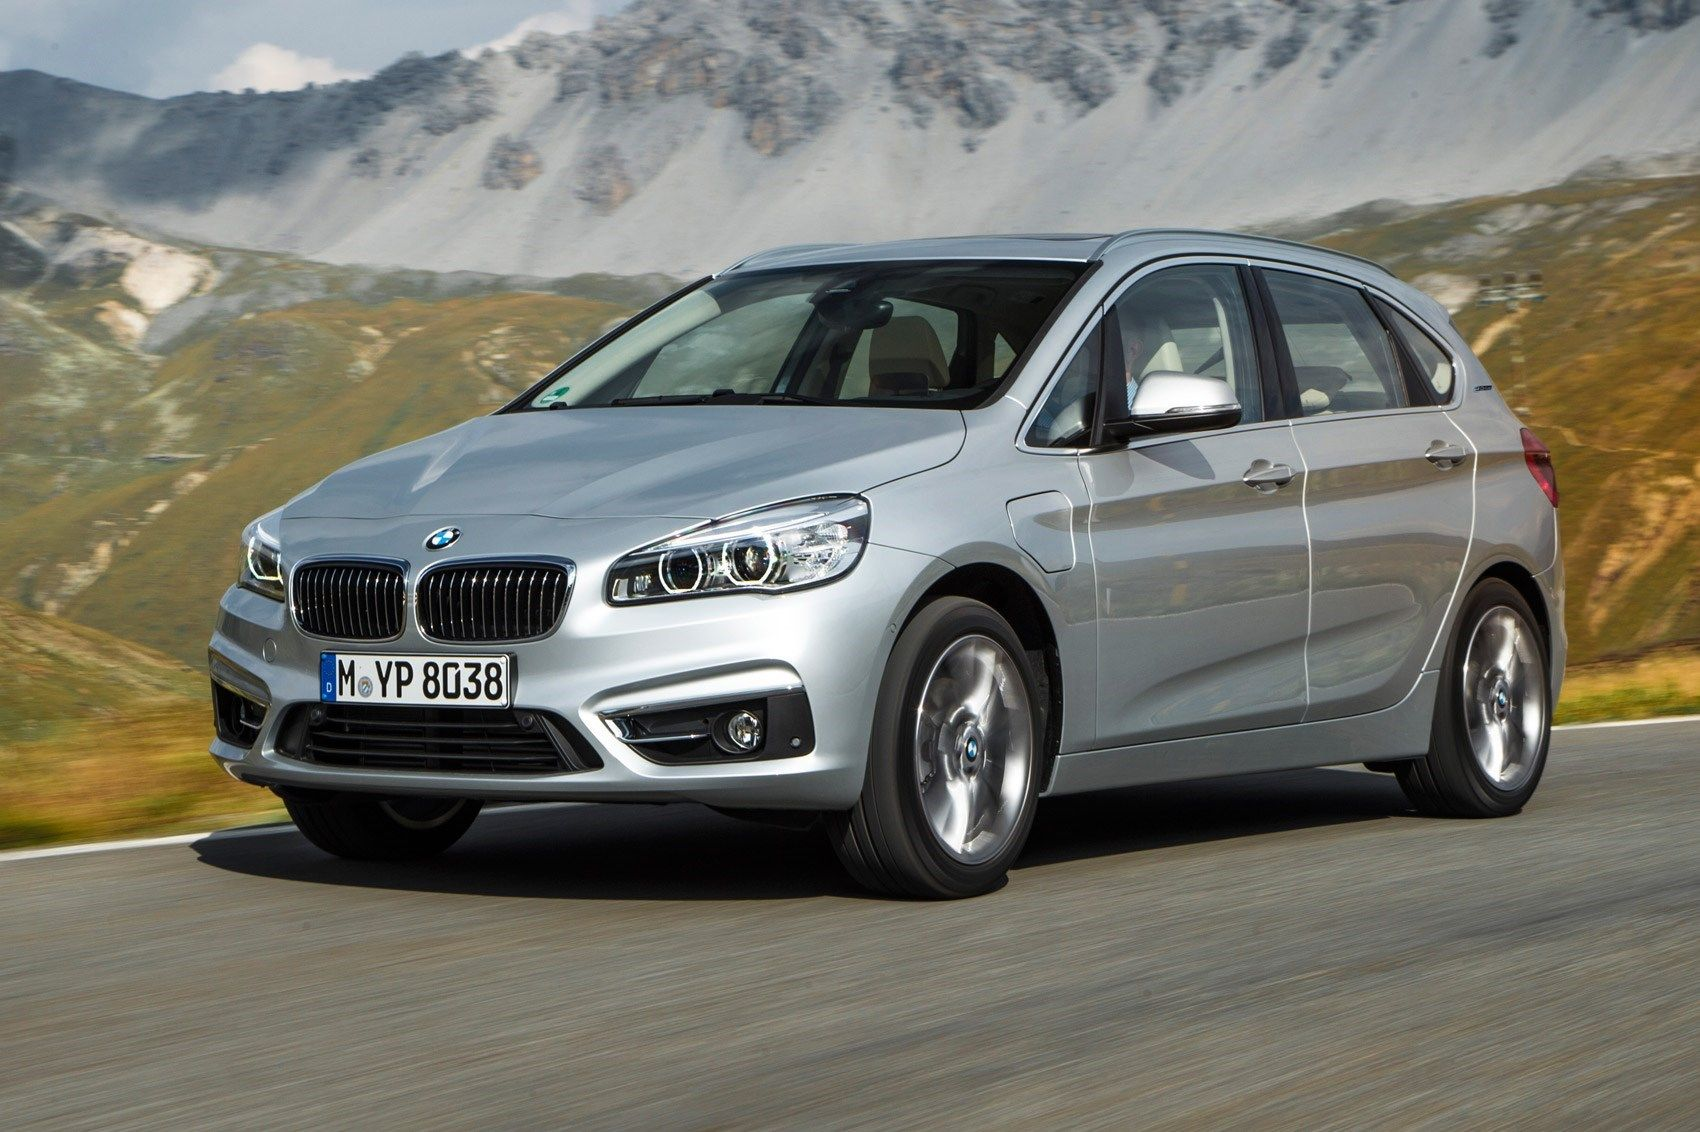 Best Used Hybrid Cars In 2019 Uk The Top Second Hand Buys Best Used Hybrid Cars In 2019 Uk The Top Secondhand Buys These Are The Top Hybr Hybrid Car Bmw Bmw 2